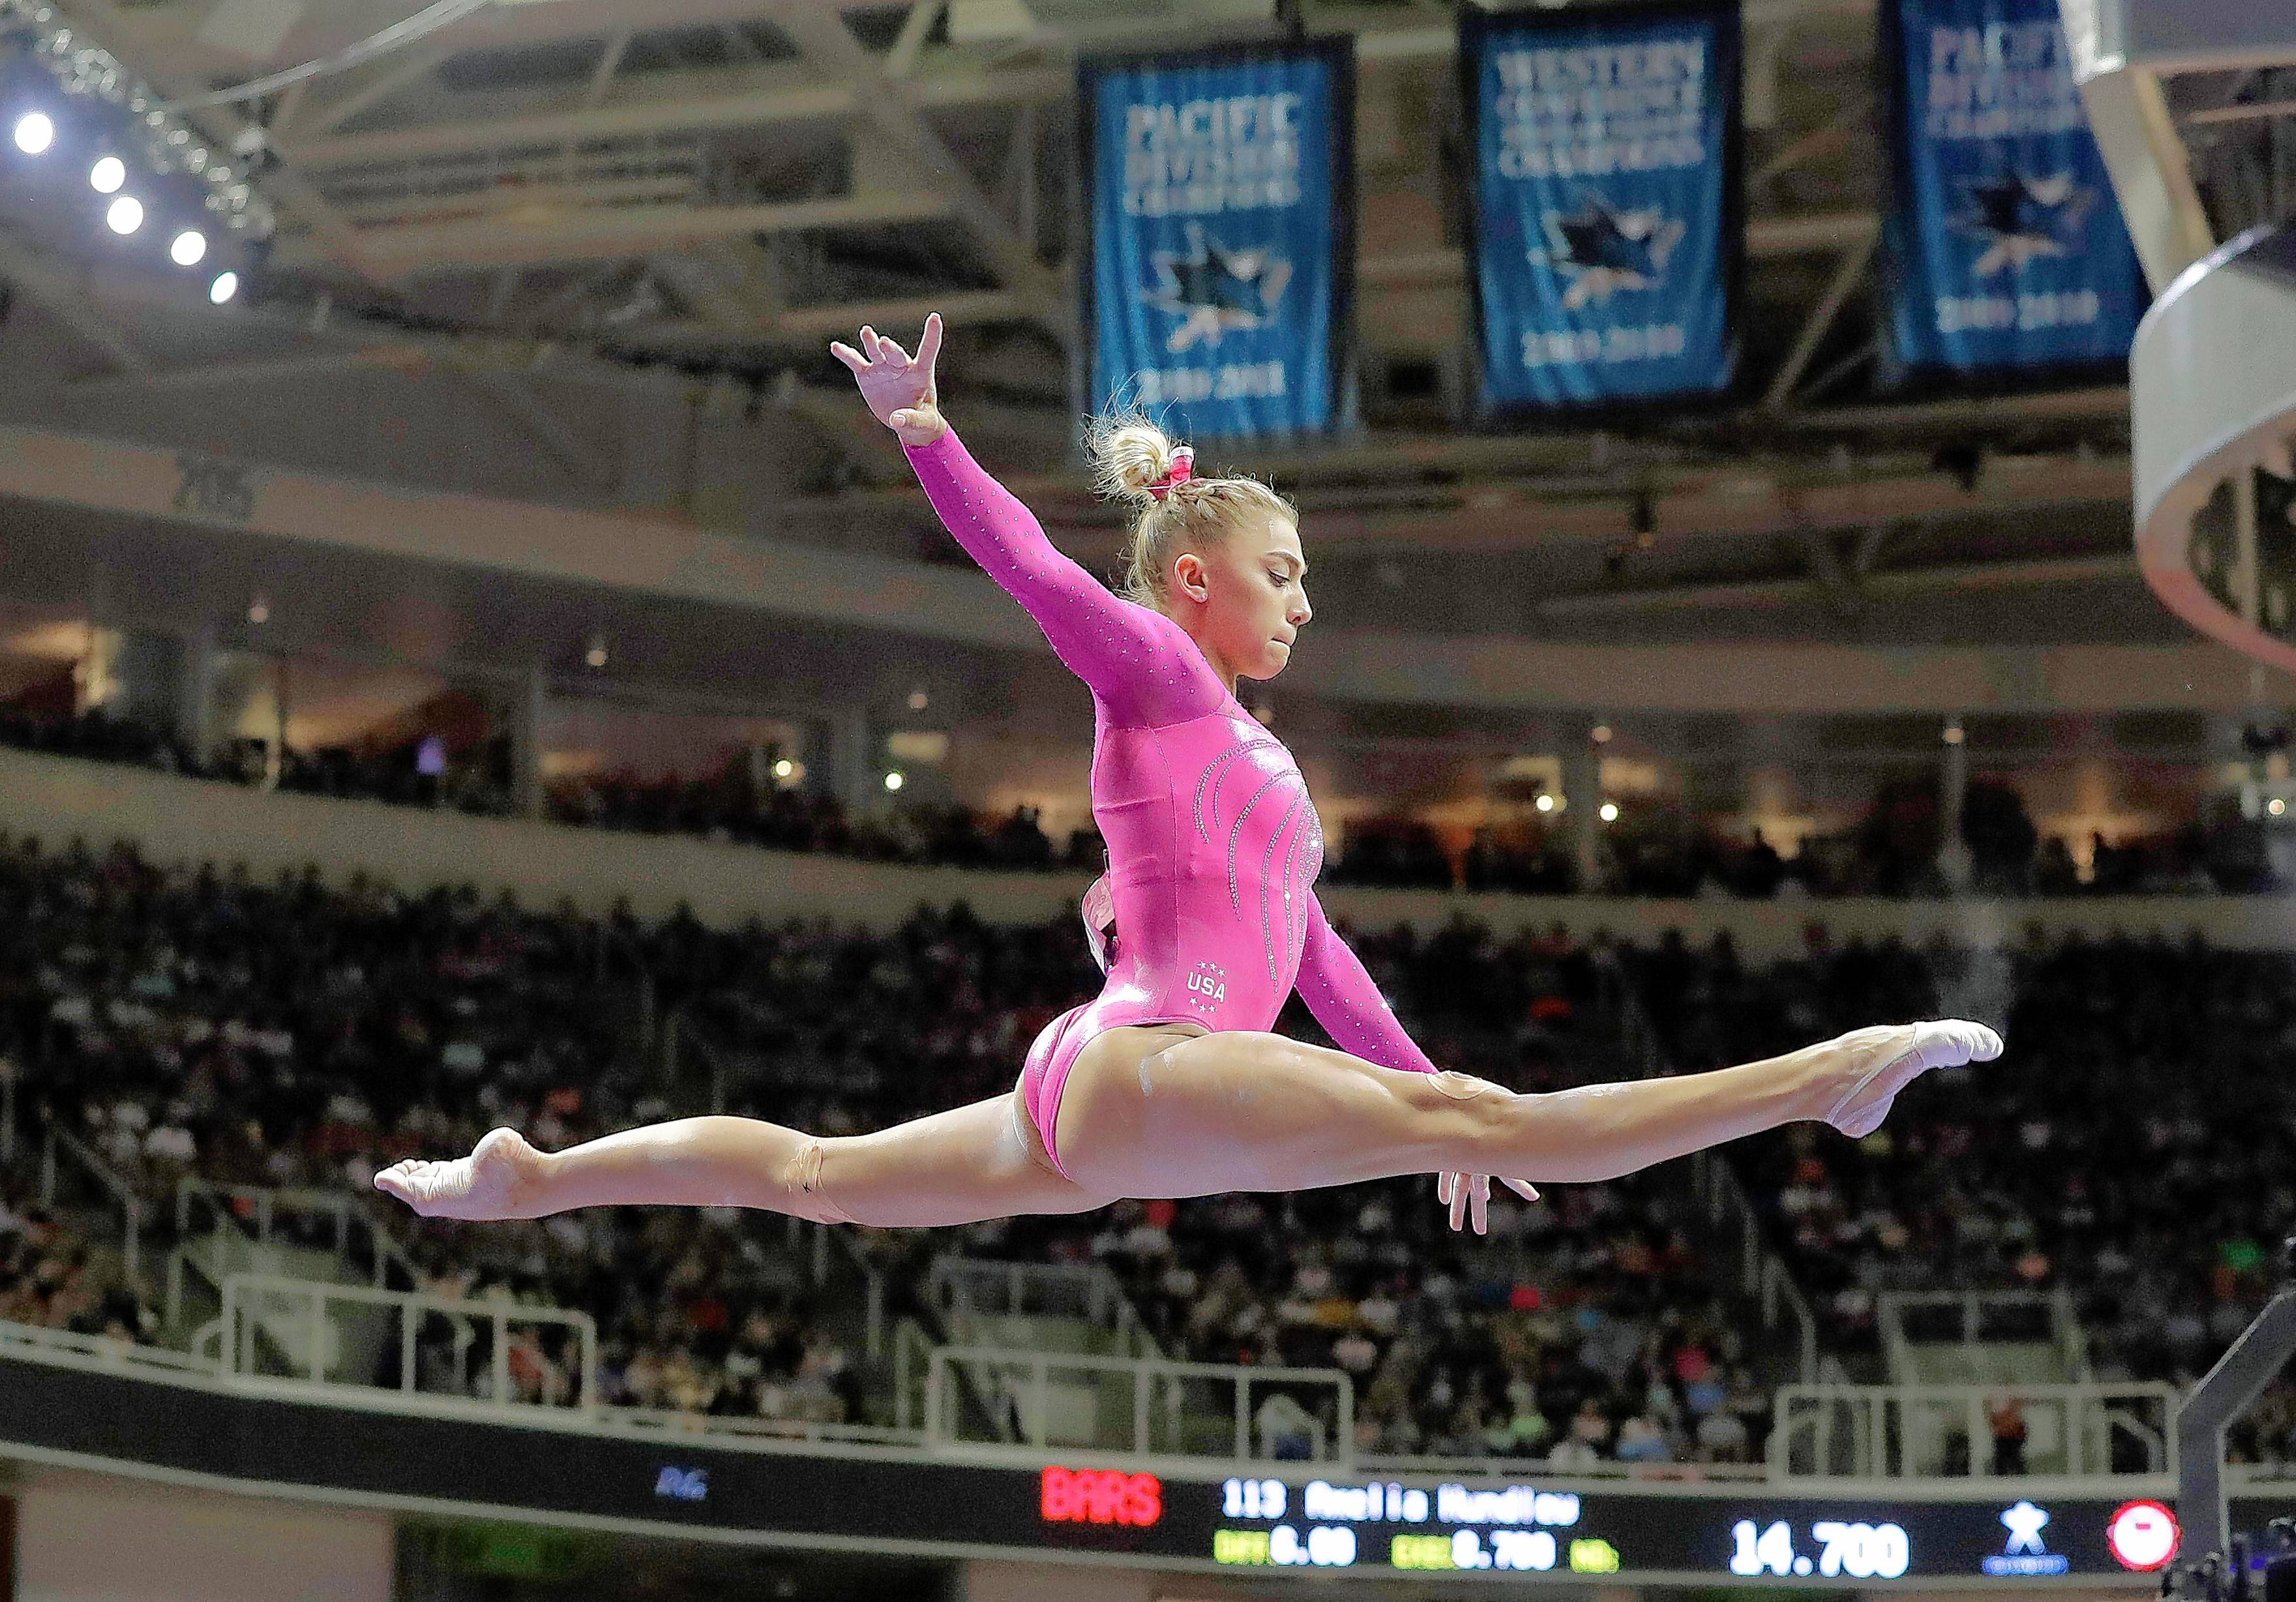 Ashton Locklear will compete with U.S. Classic Gymnastics at the Sears Centre Arena in Hoffman Estates.